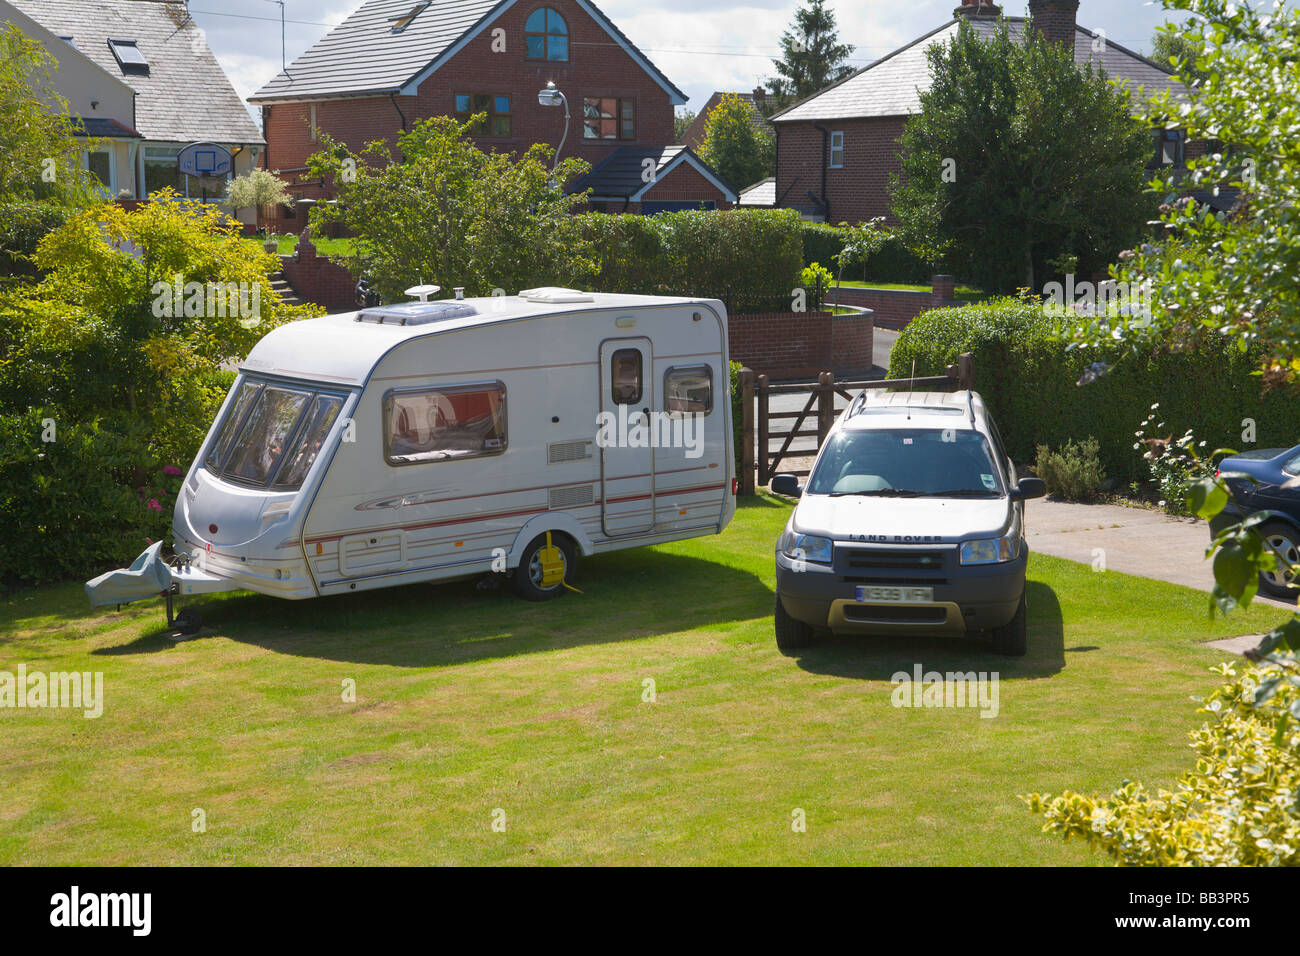 Car and caravan parked on front lawn of a house - Stock Image